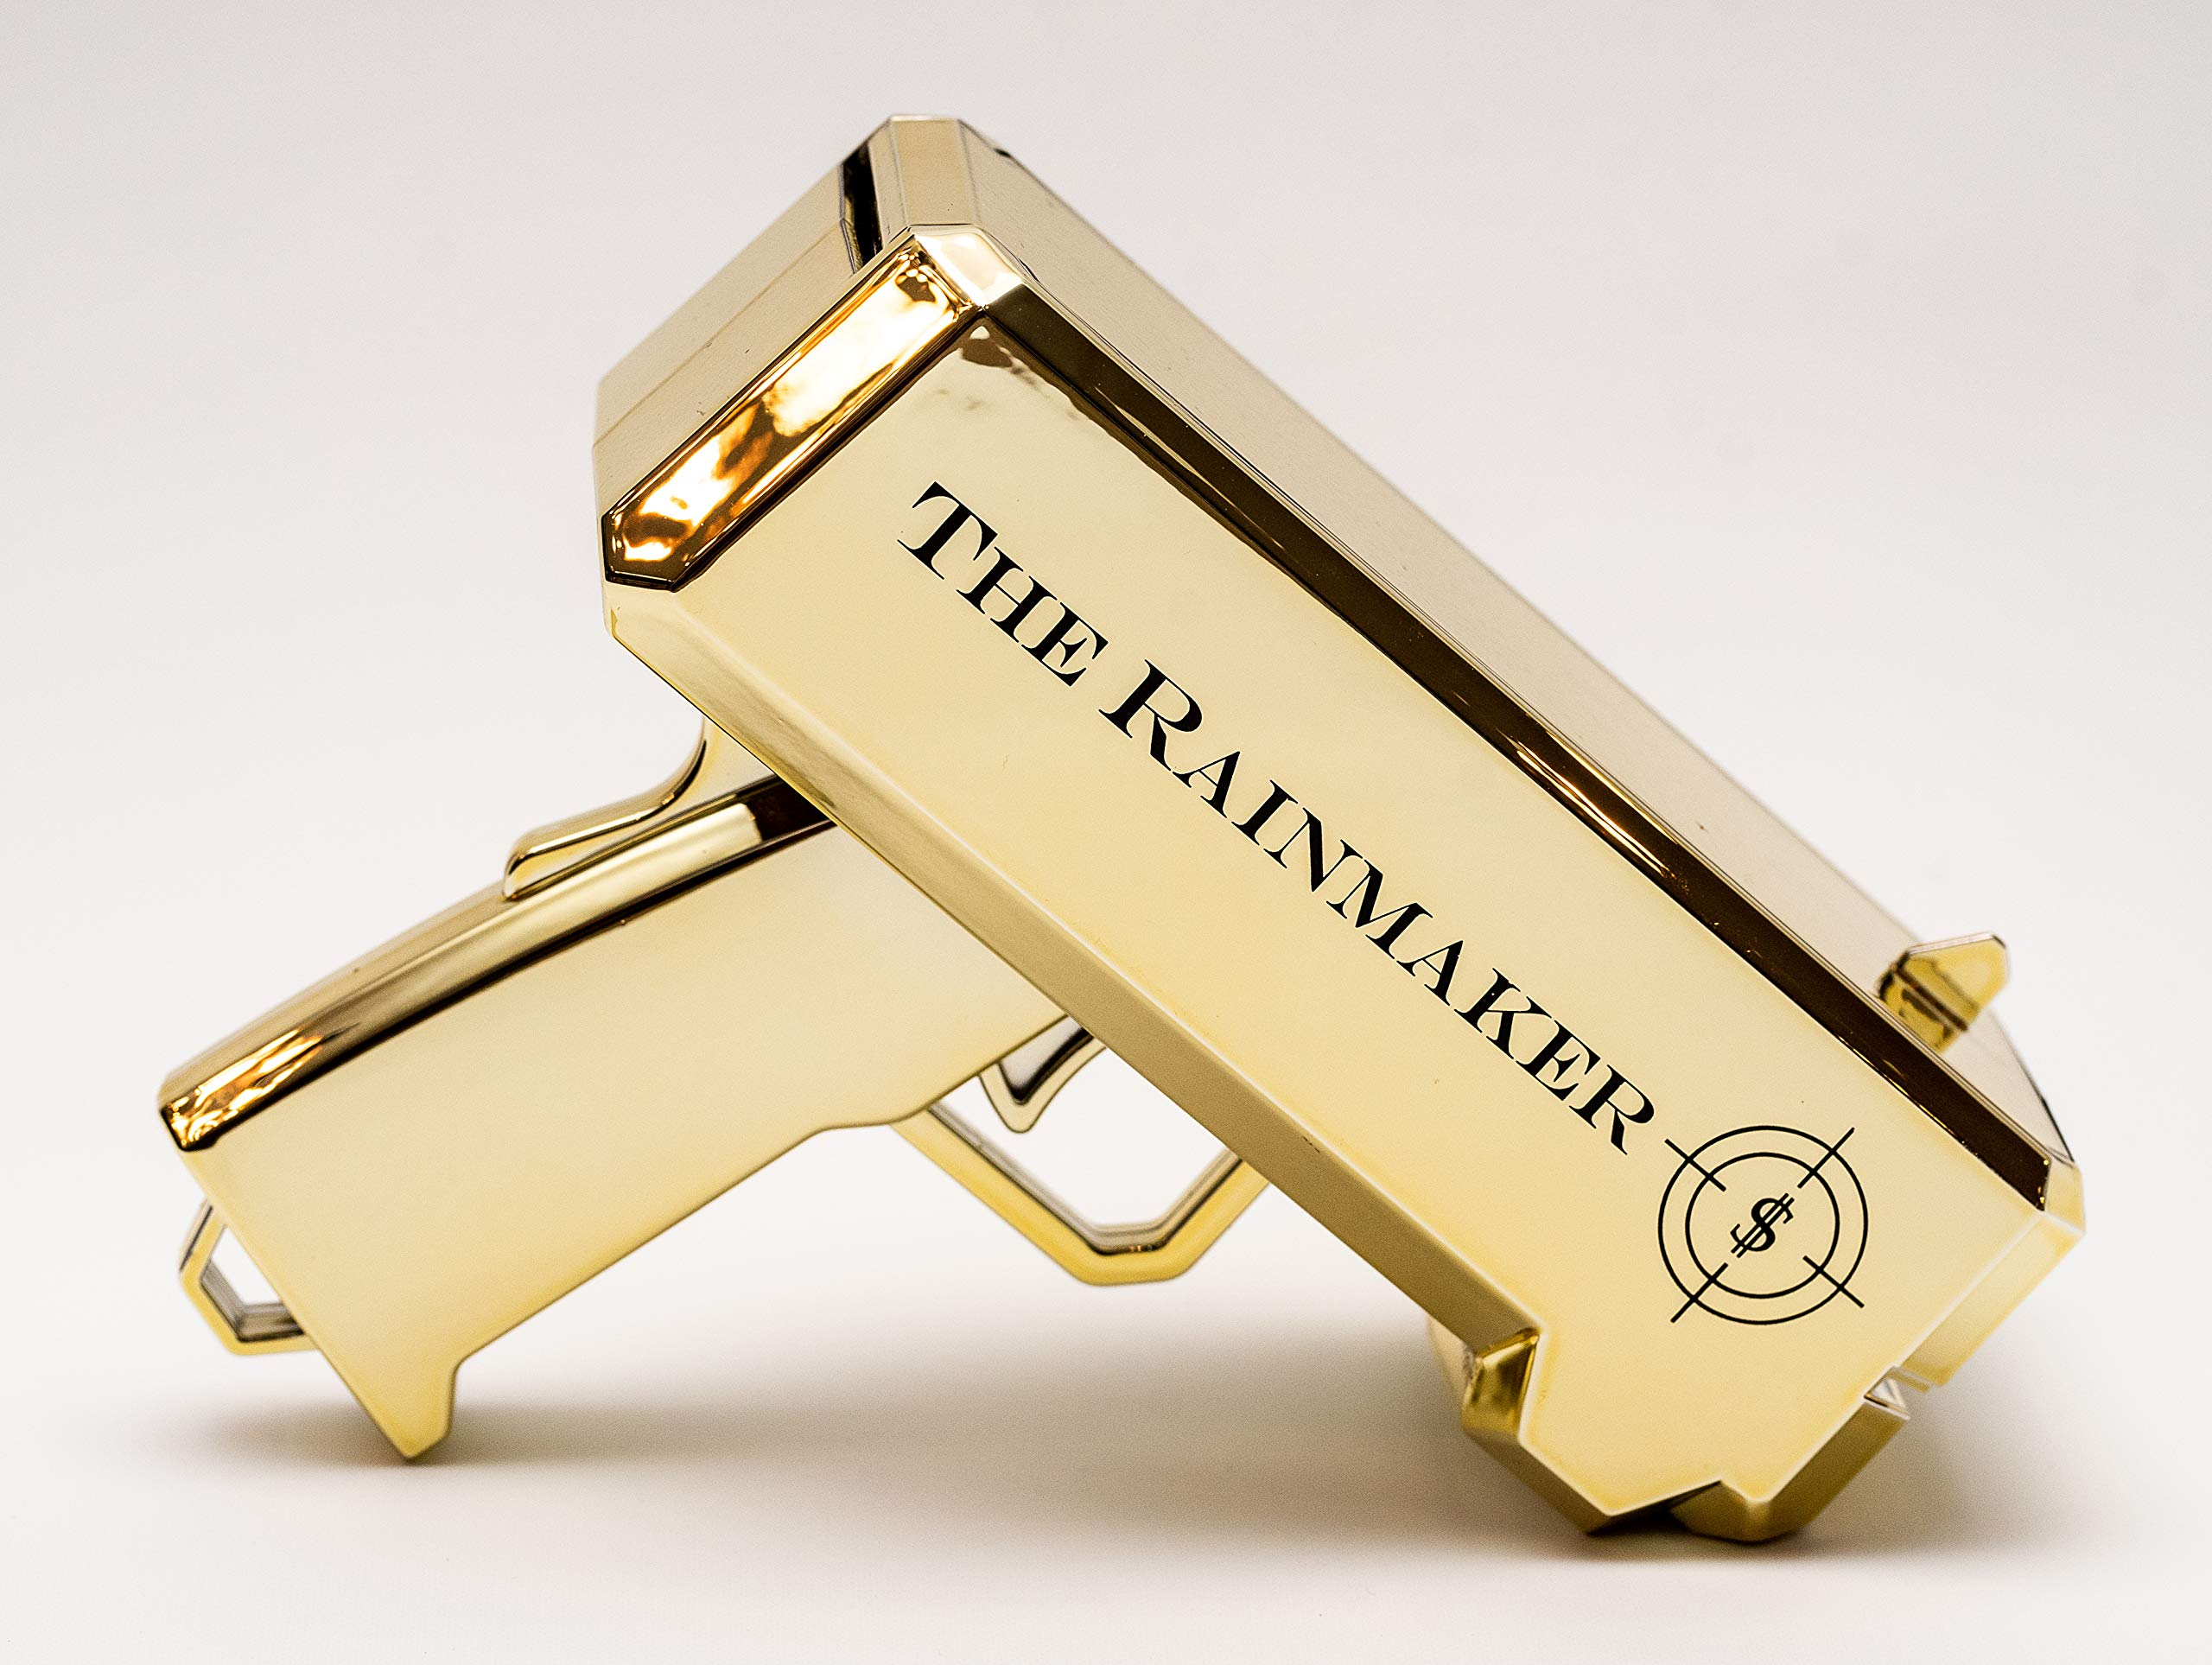 All Out Solutions The Rainmaker Money Gun | $10,000 Play Money | Money Looks Real! | Metallic Gold | Impress Your Friends with This Fun Party Toy | Shoot Cash and Make It Rain by All Out Solutions (Image #5)